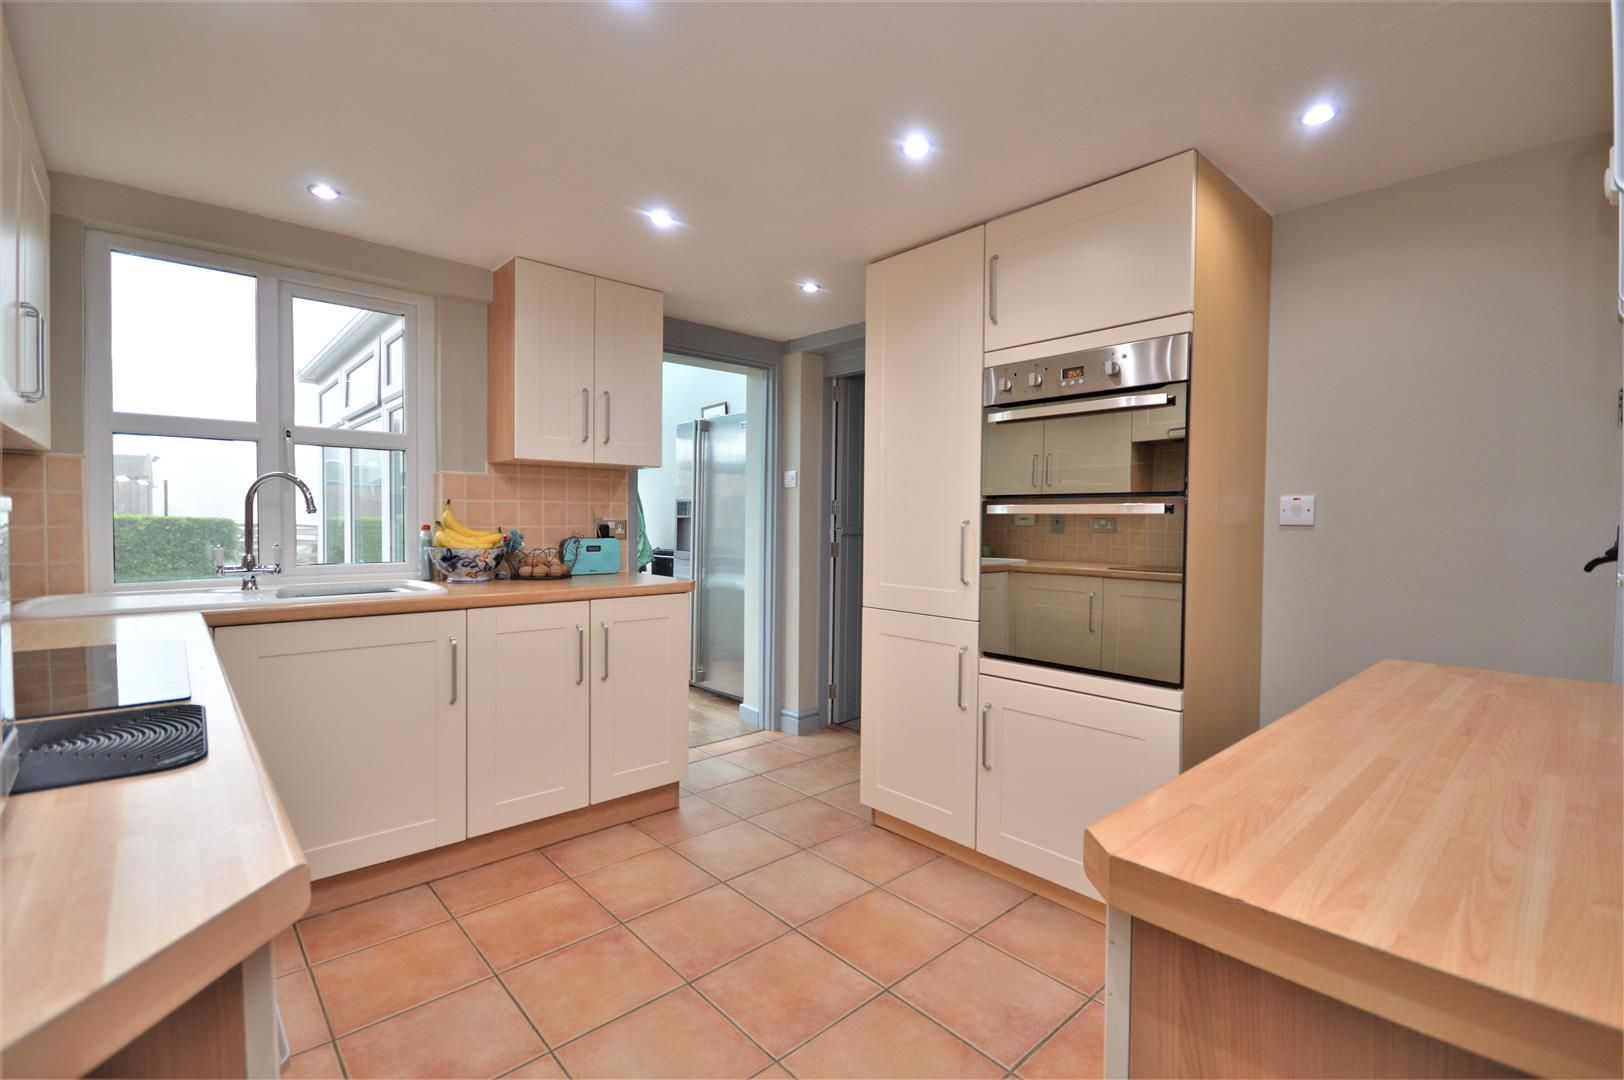 3 bed semi-detached for sale in Sutton St. Nicholas  - Property Image 2